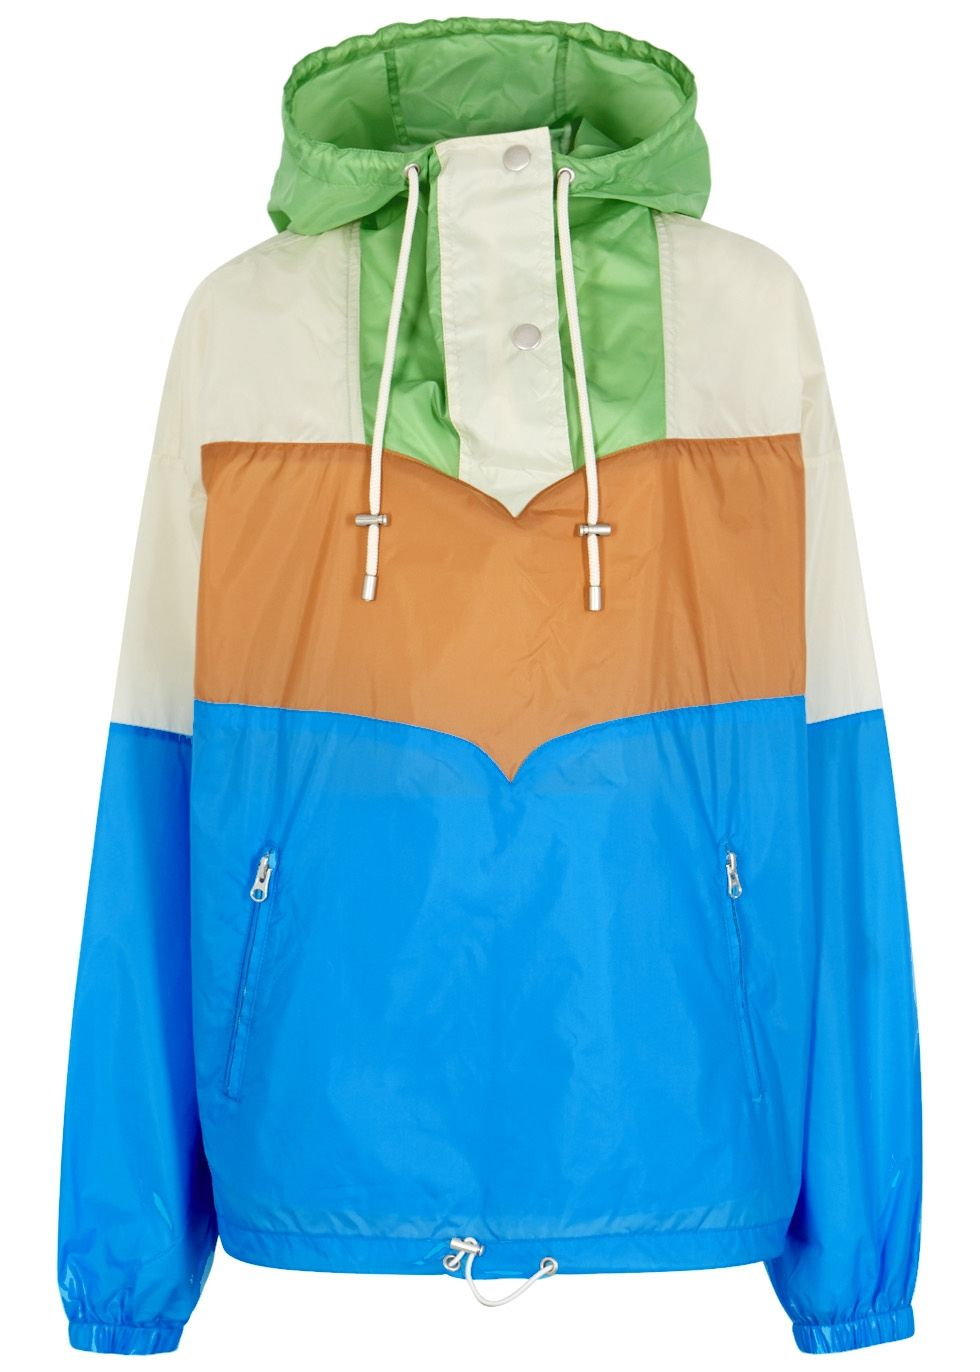 Discount 2018 Newest 2018 New Online colourblock windbreaker - Blue Isabel Marant Popular And Cheap V44zI8p